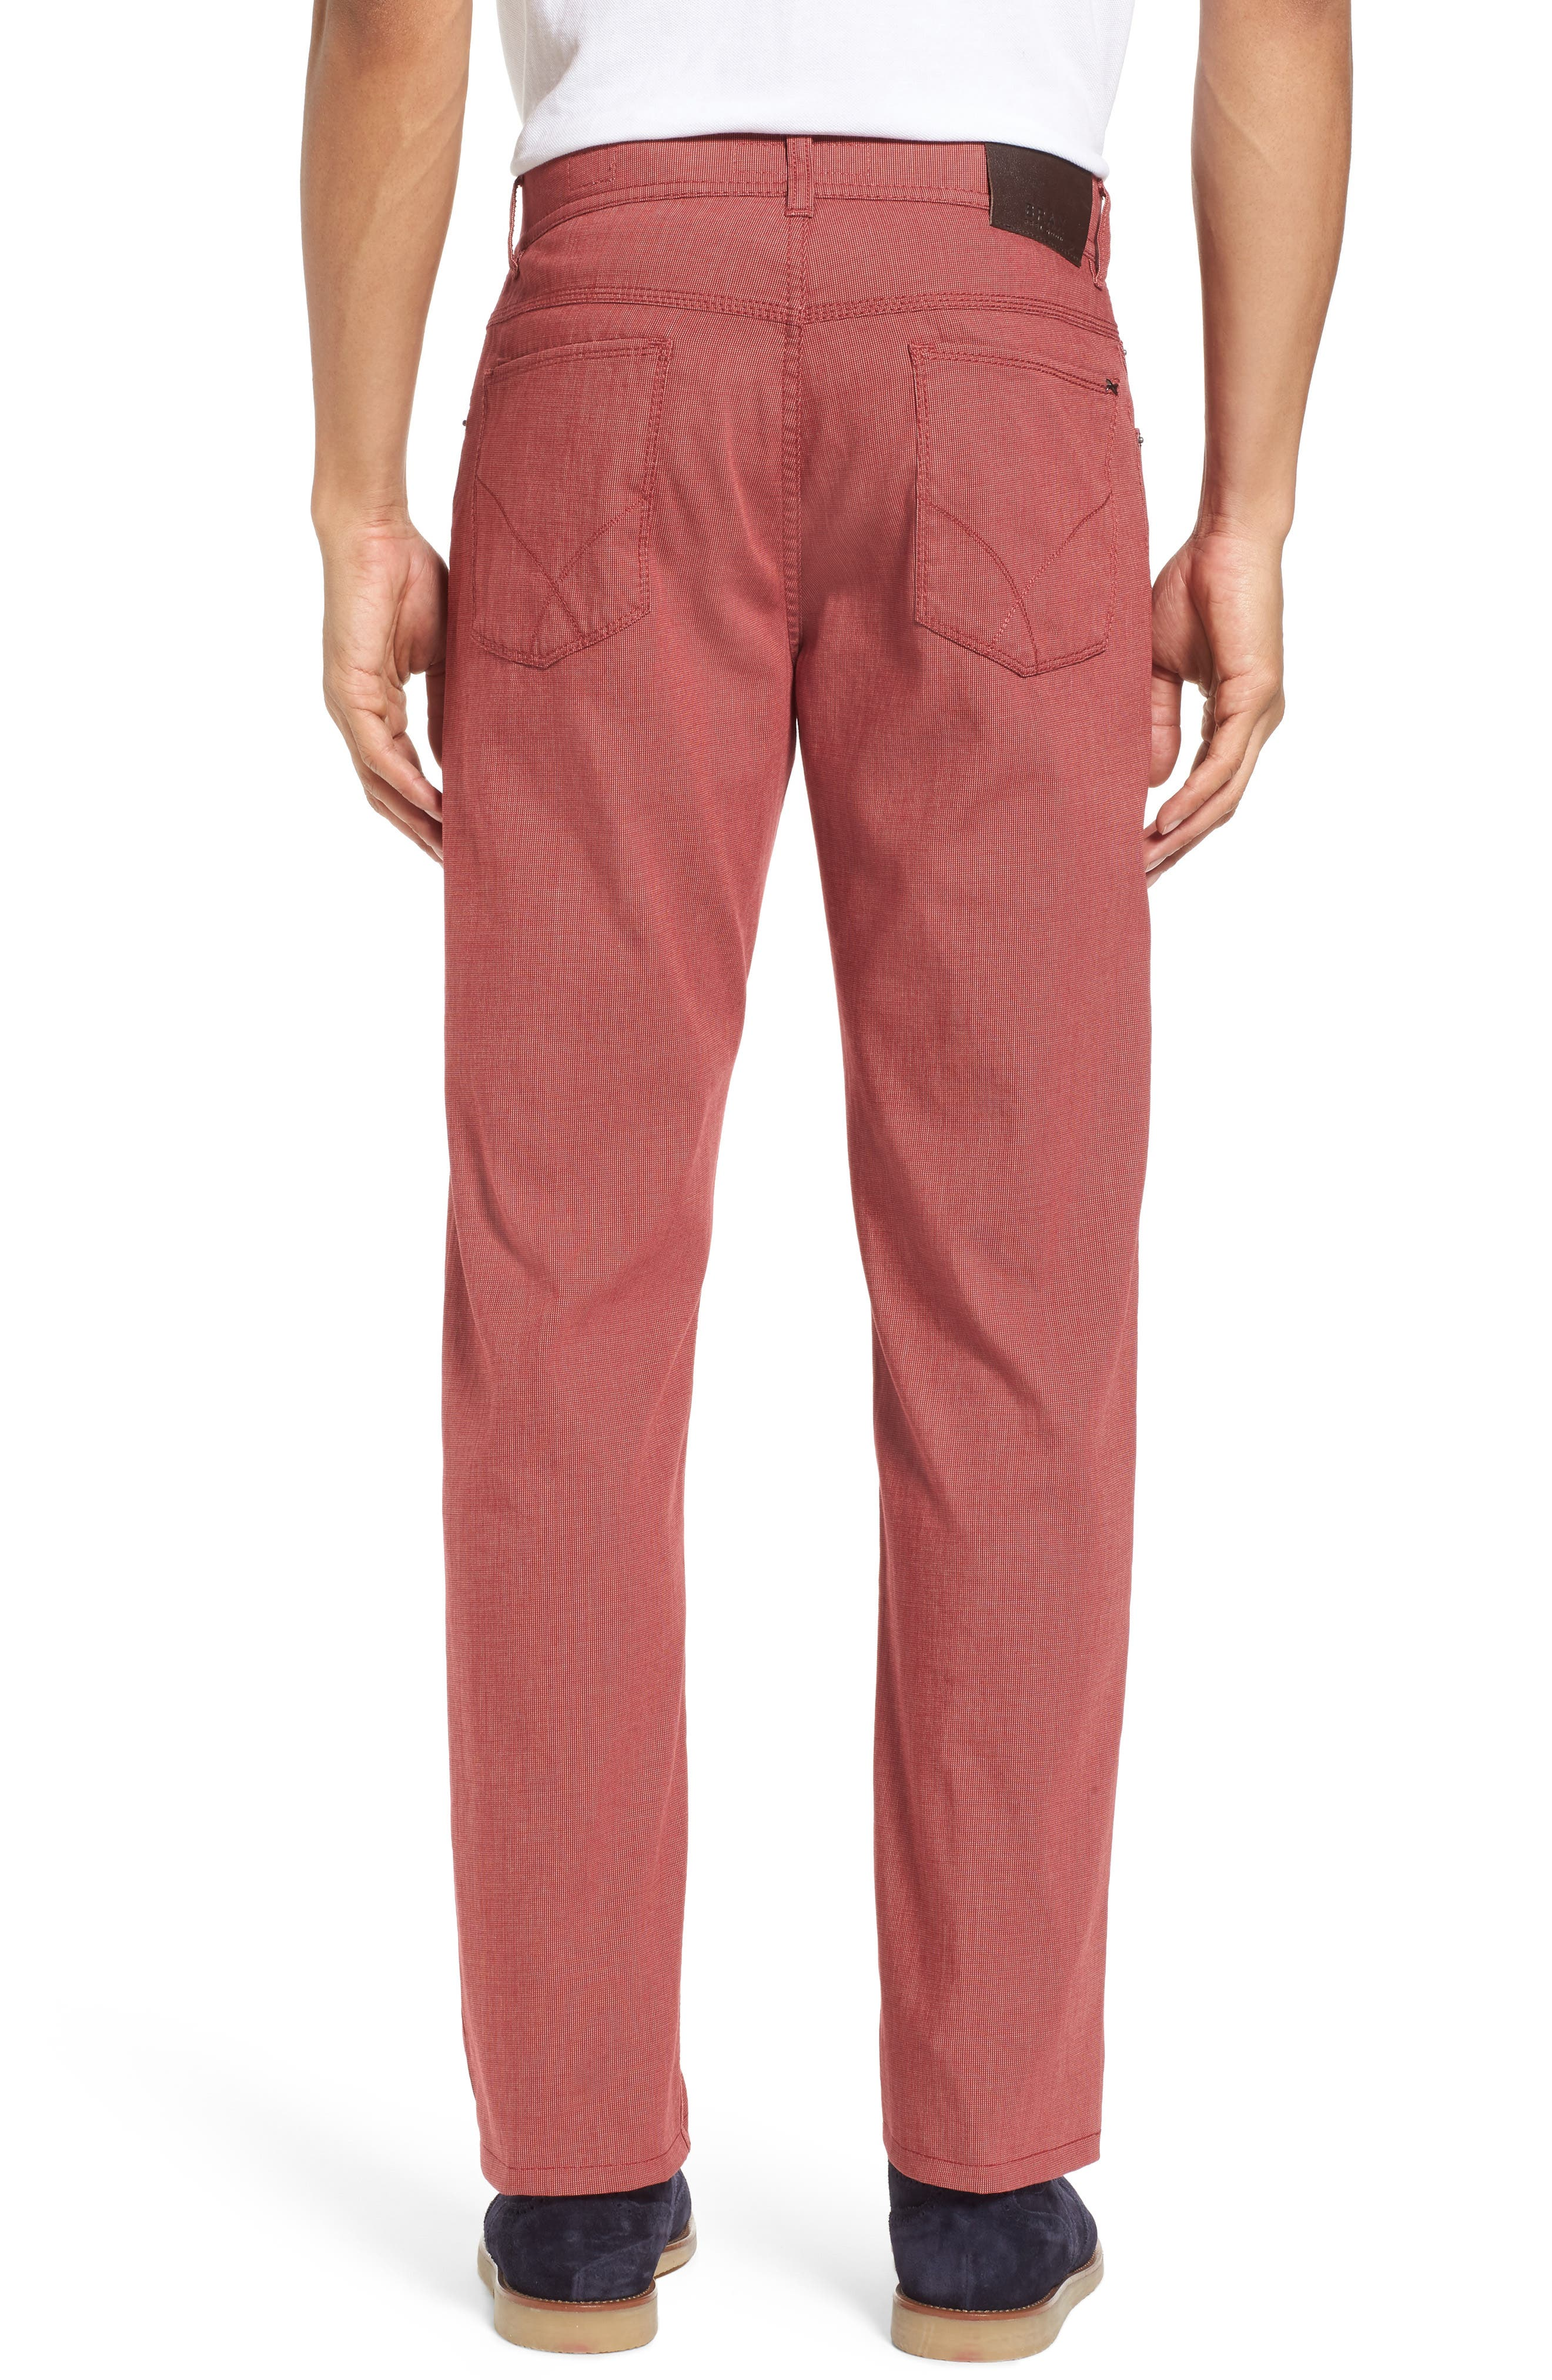 Sensation Stretch Trousers,                             Alternate thumbnail 2, color,                             Red